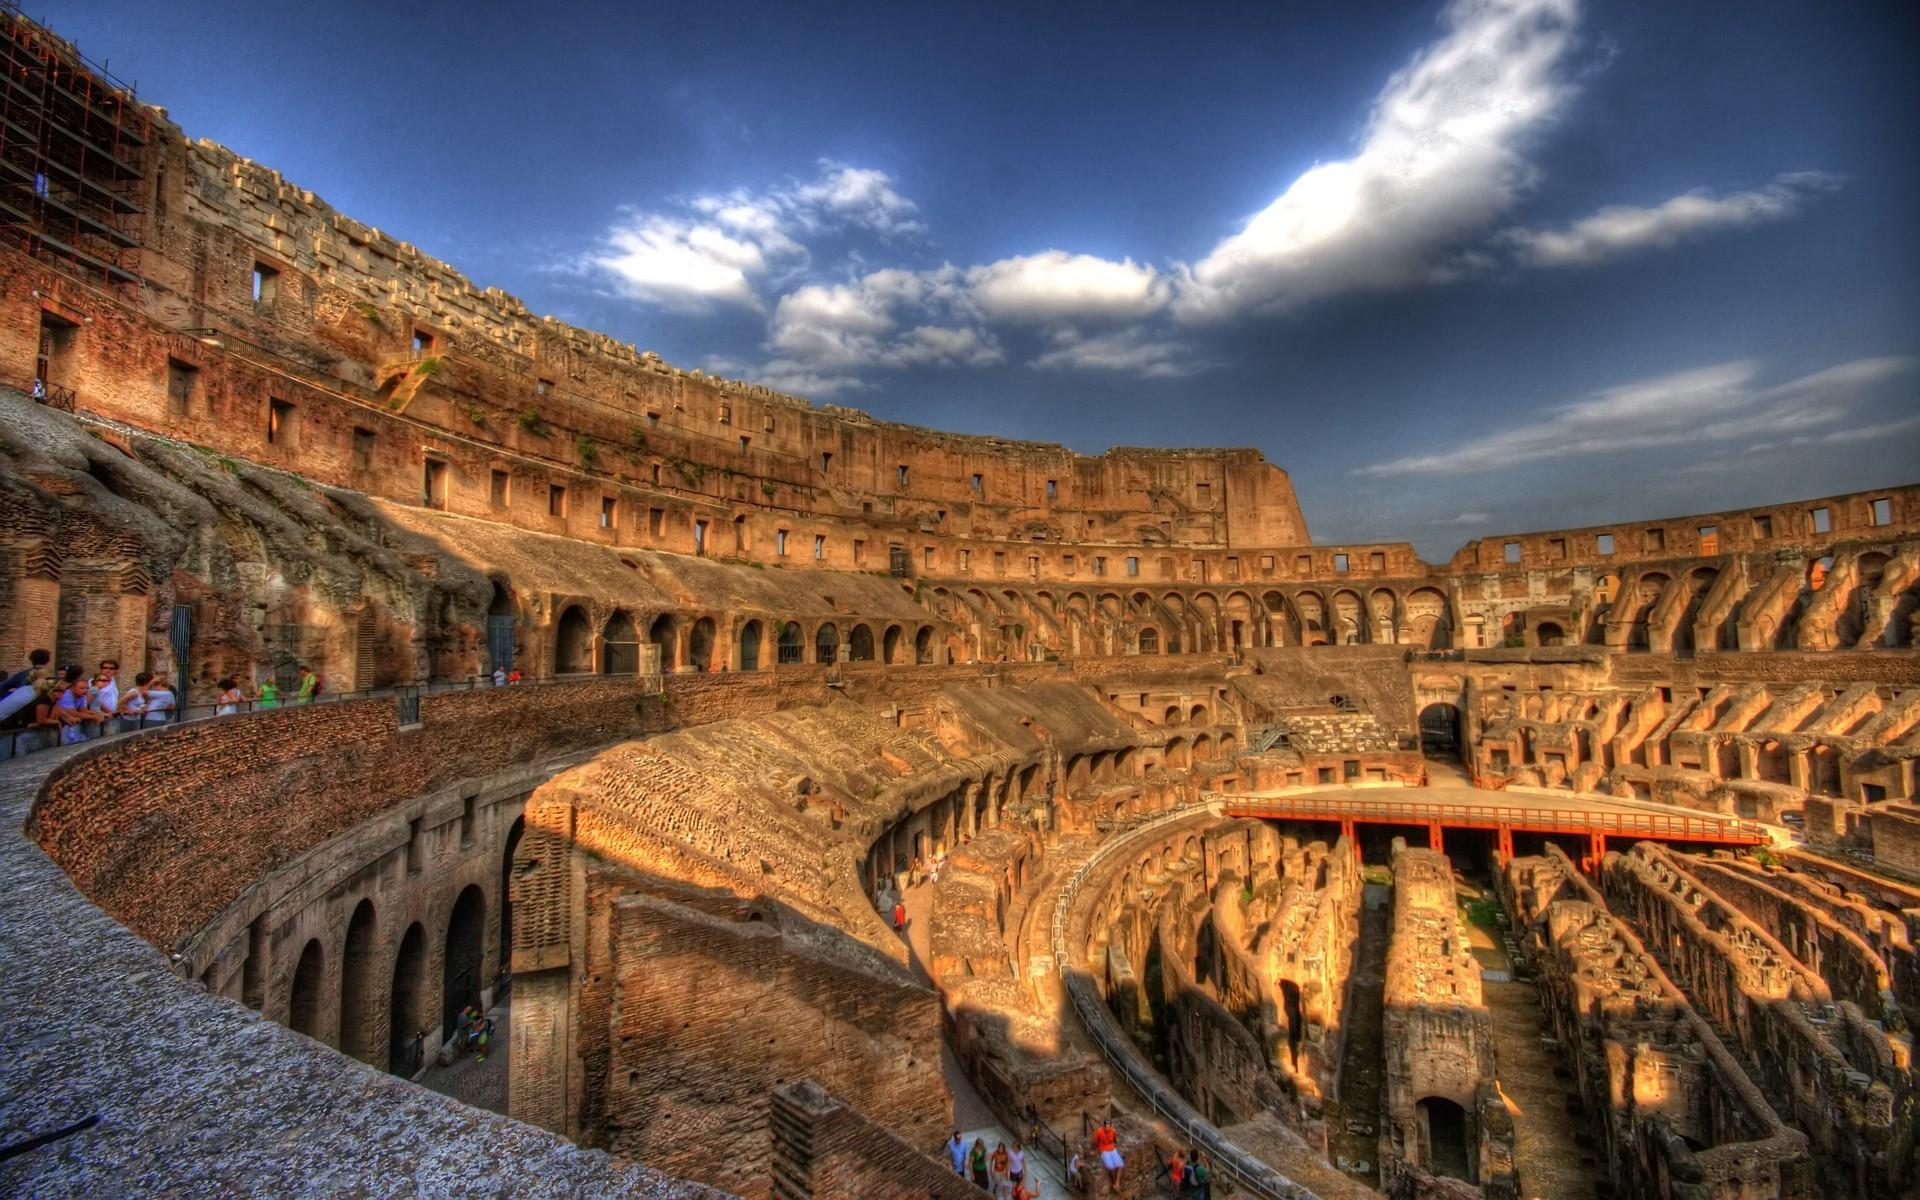 Hintergrundbild colosseum rom hd Widescreen High 1920x1200